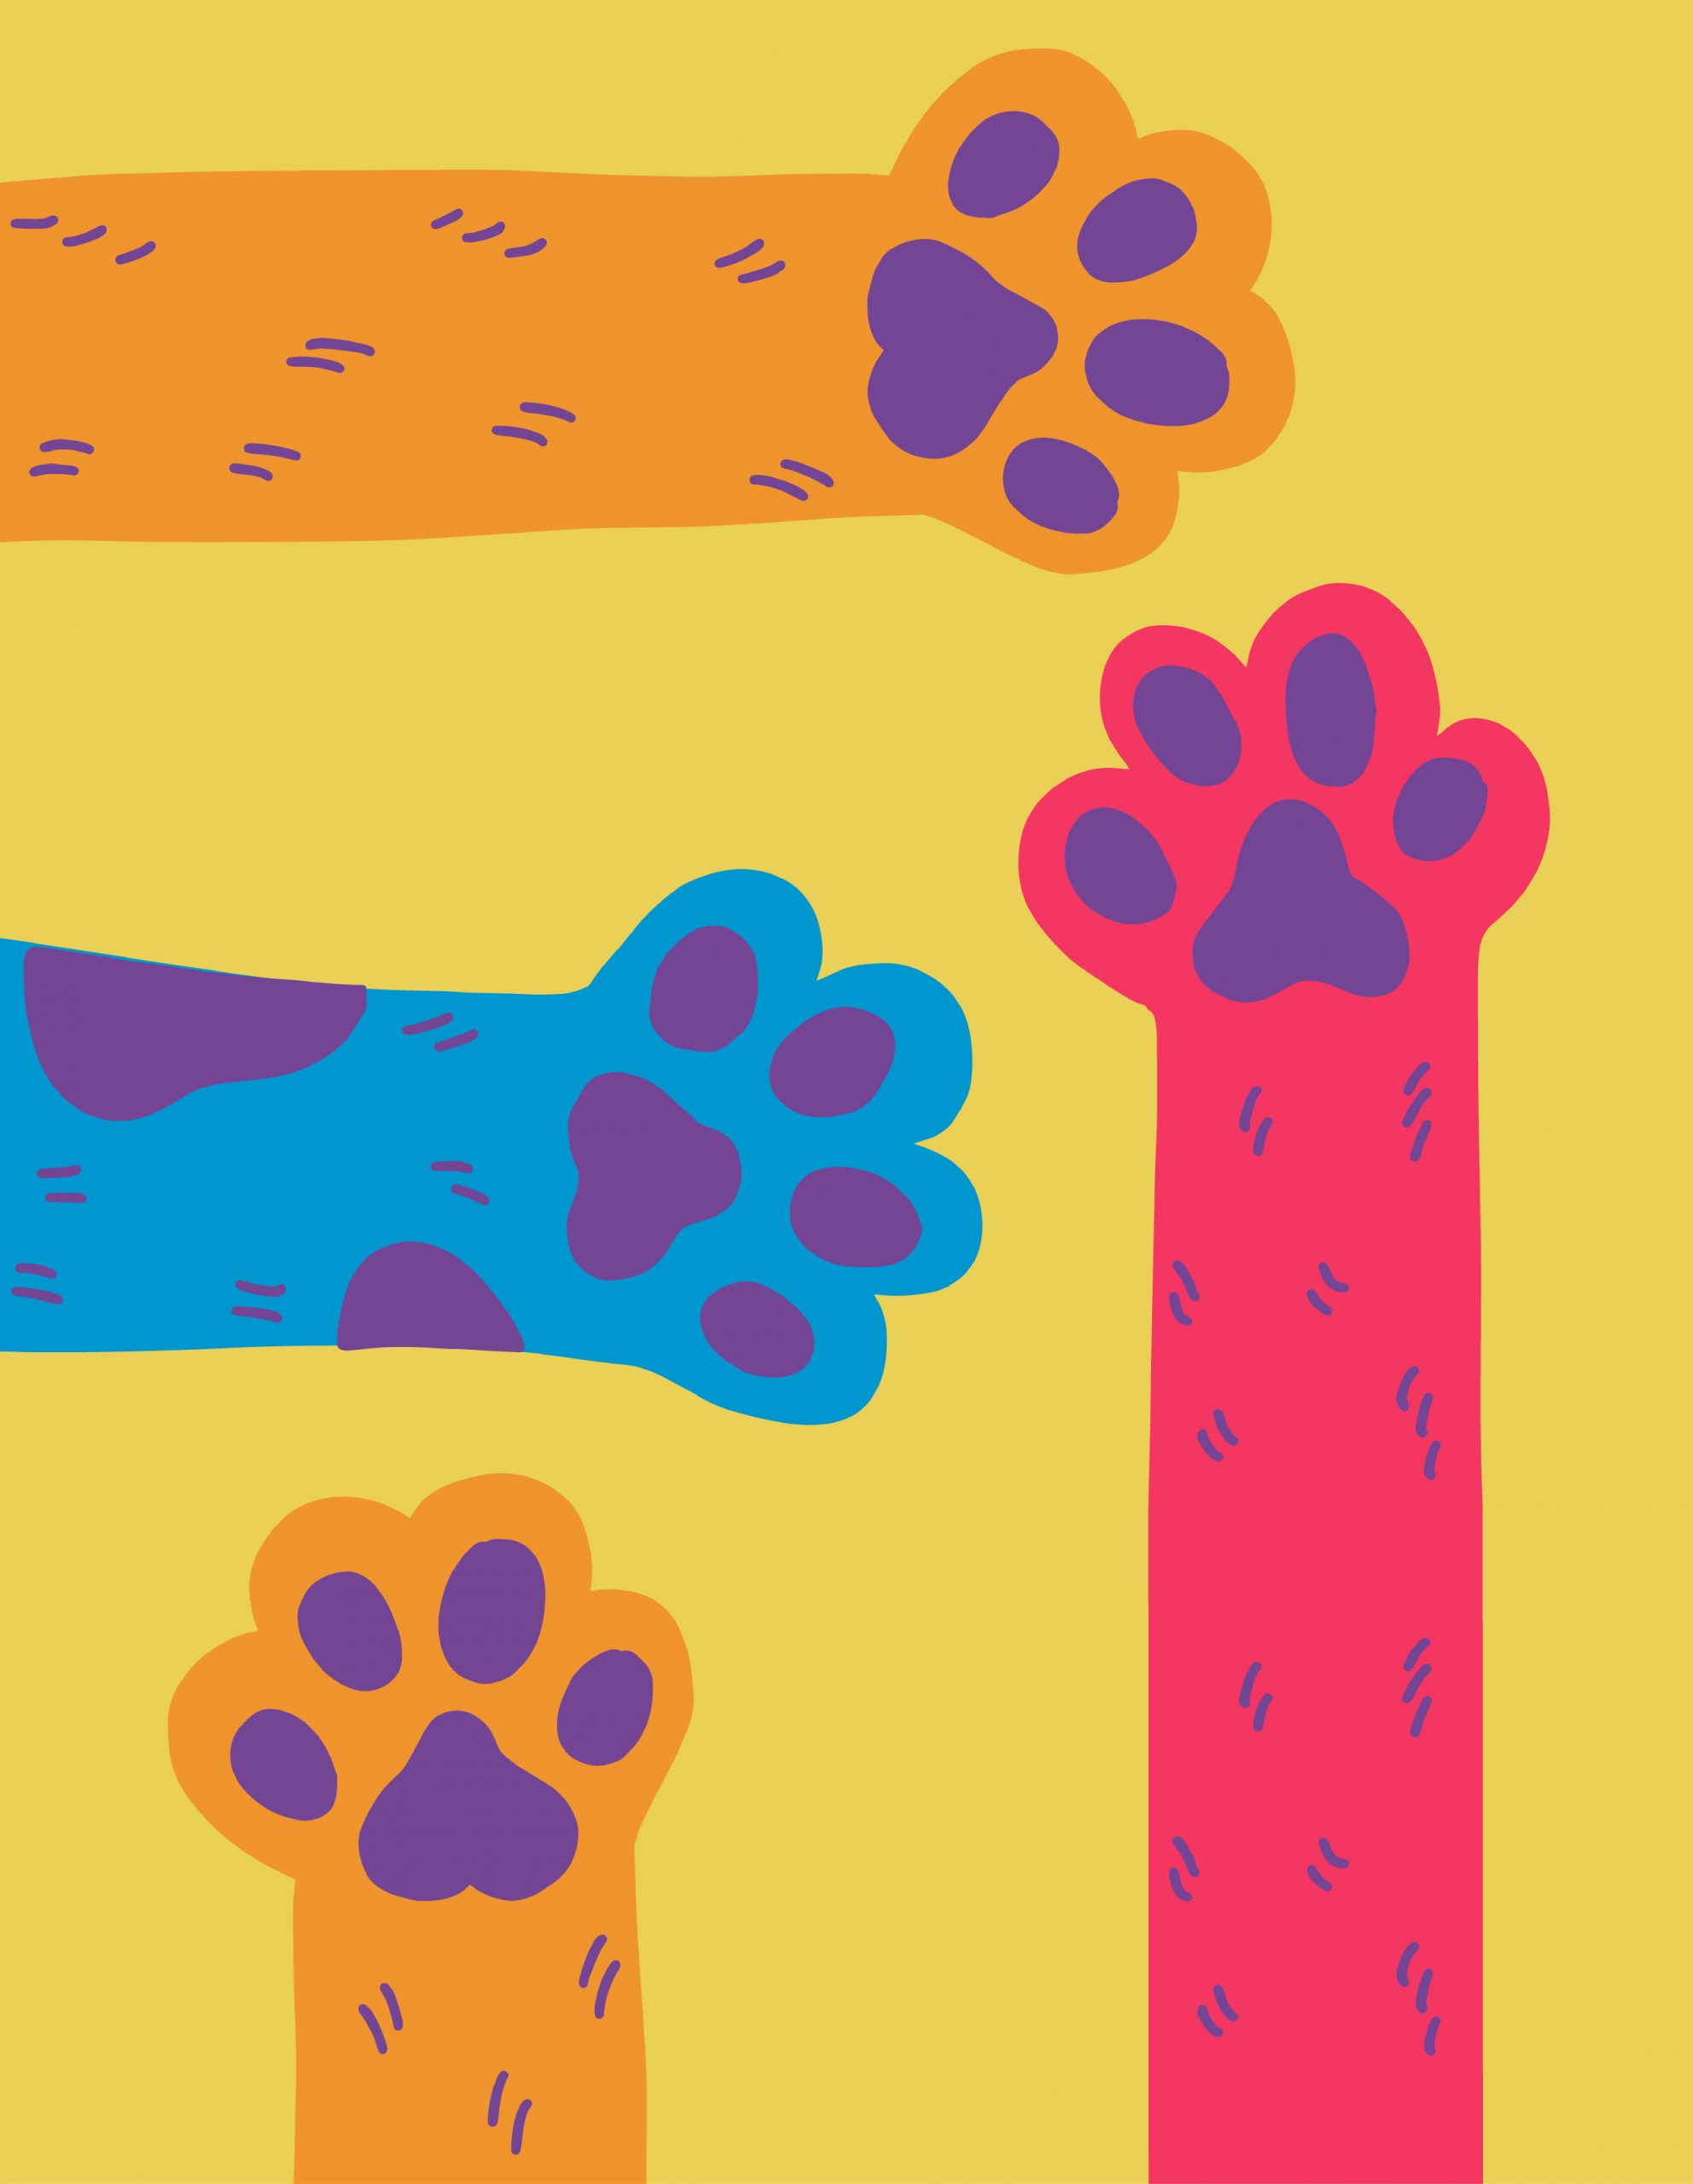 orange, blue, and red illustrated paws